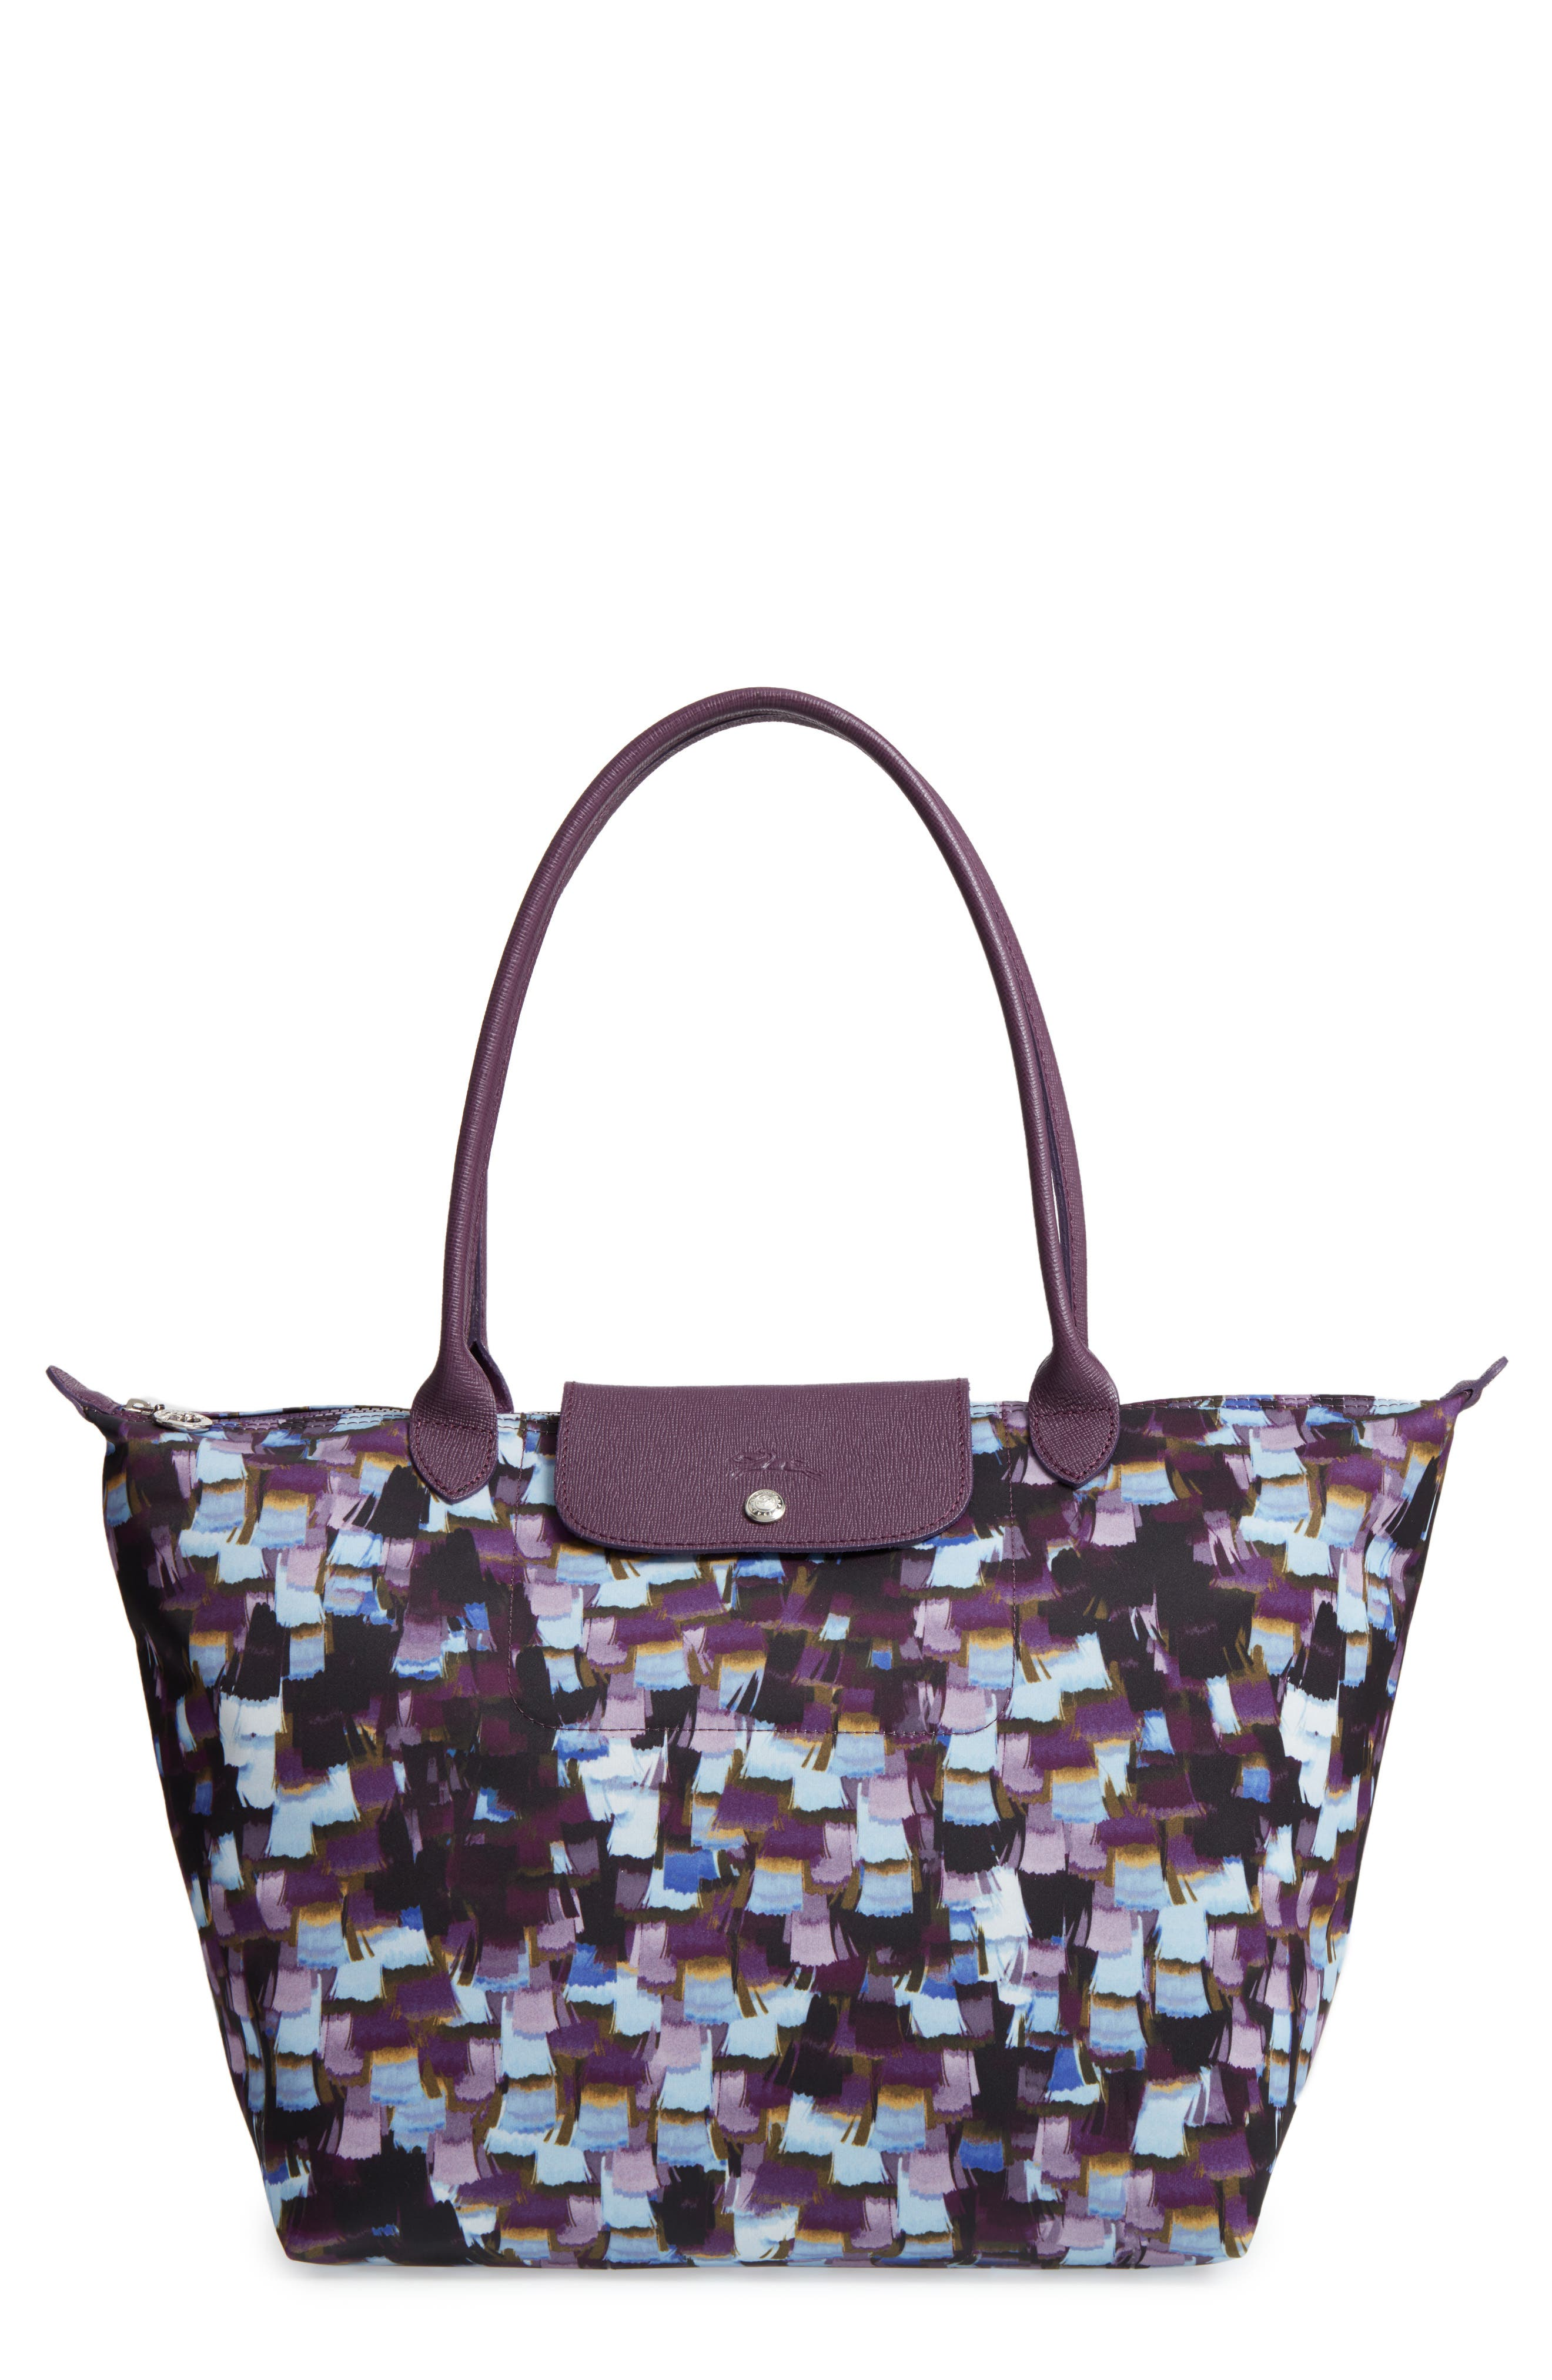 Le Pliage Neo - Vibrations Large Nylon Tote,                         Main,                         color, Deep Purple